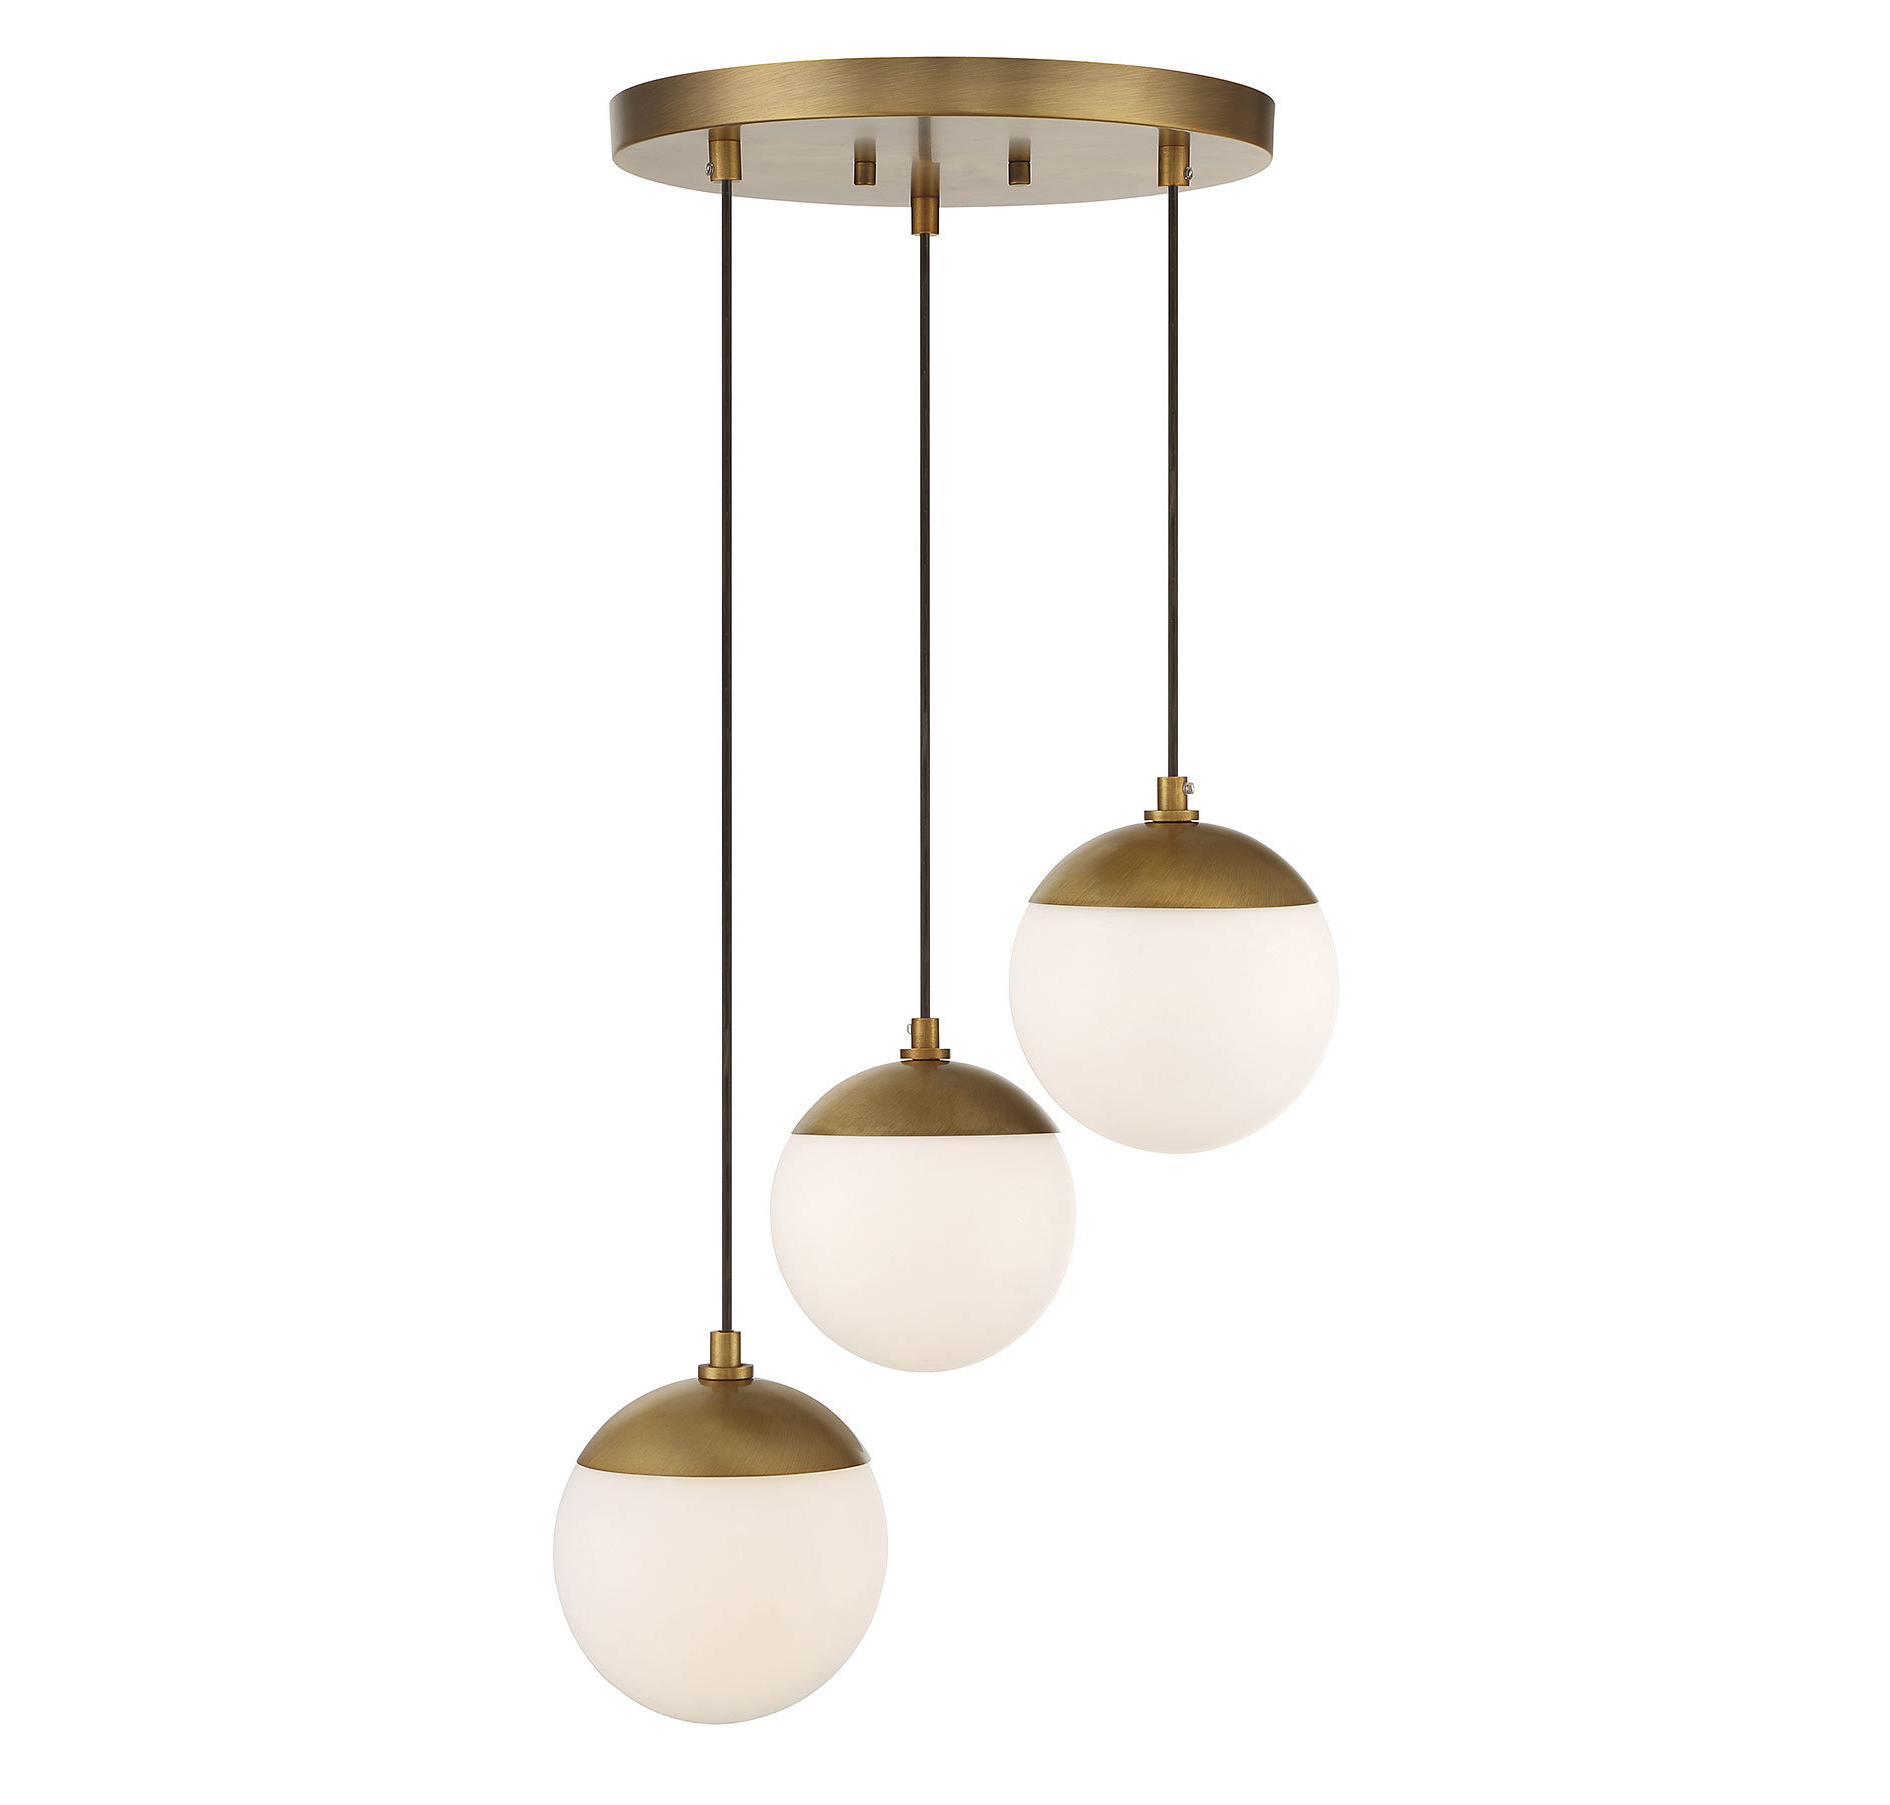 2020 Bautista 1 Light Single Globe Pendants Regarding Kara 3 Light Cluster Globe Pendant (View 3 of 25)